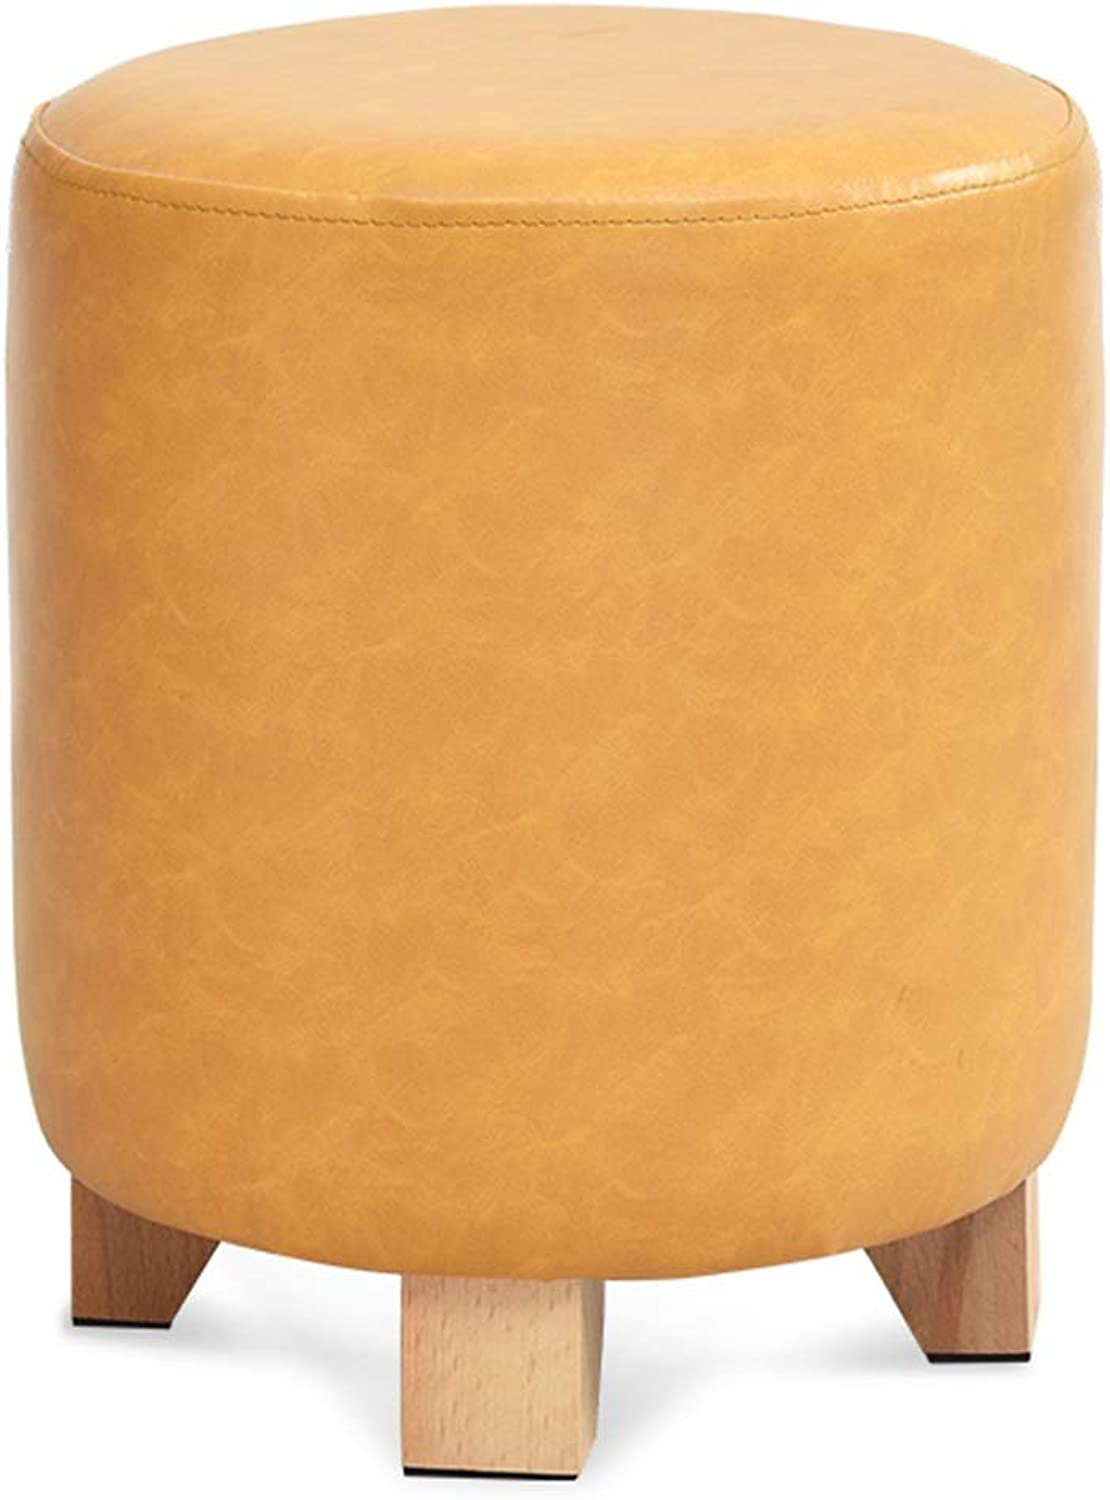 Pouffes and Footstools Home Cylindrical State Seat Low Stool Comfortable Soft PU Solid Wood, 3 colors ( color   Yellow , Size   29x29x35cm )